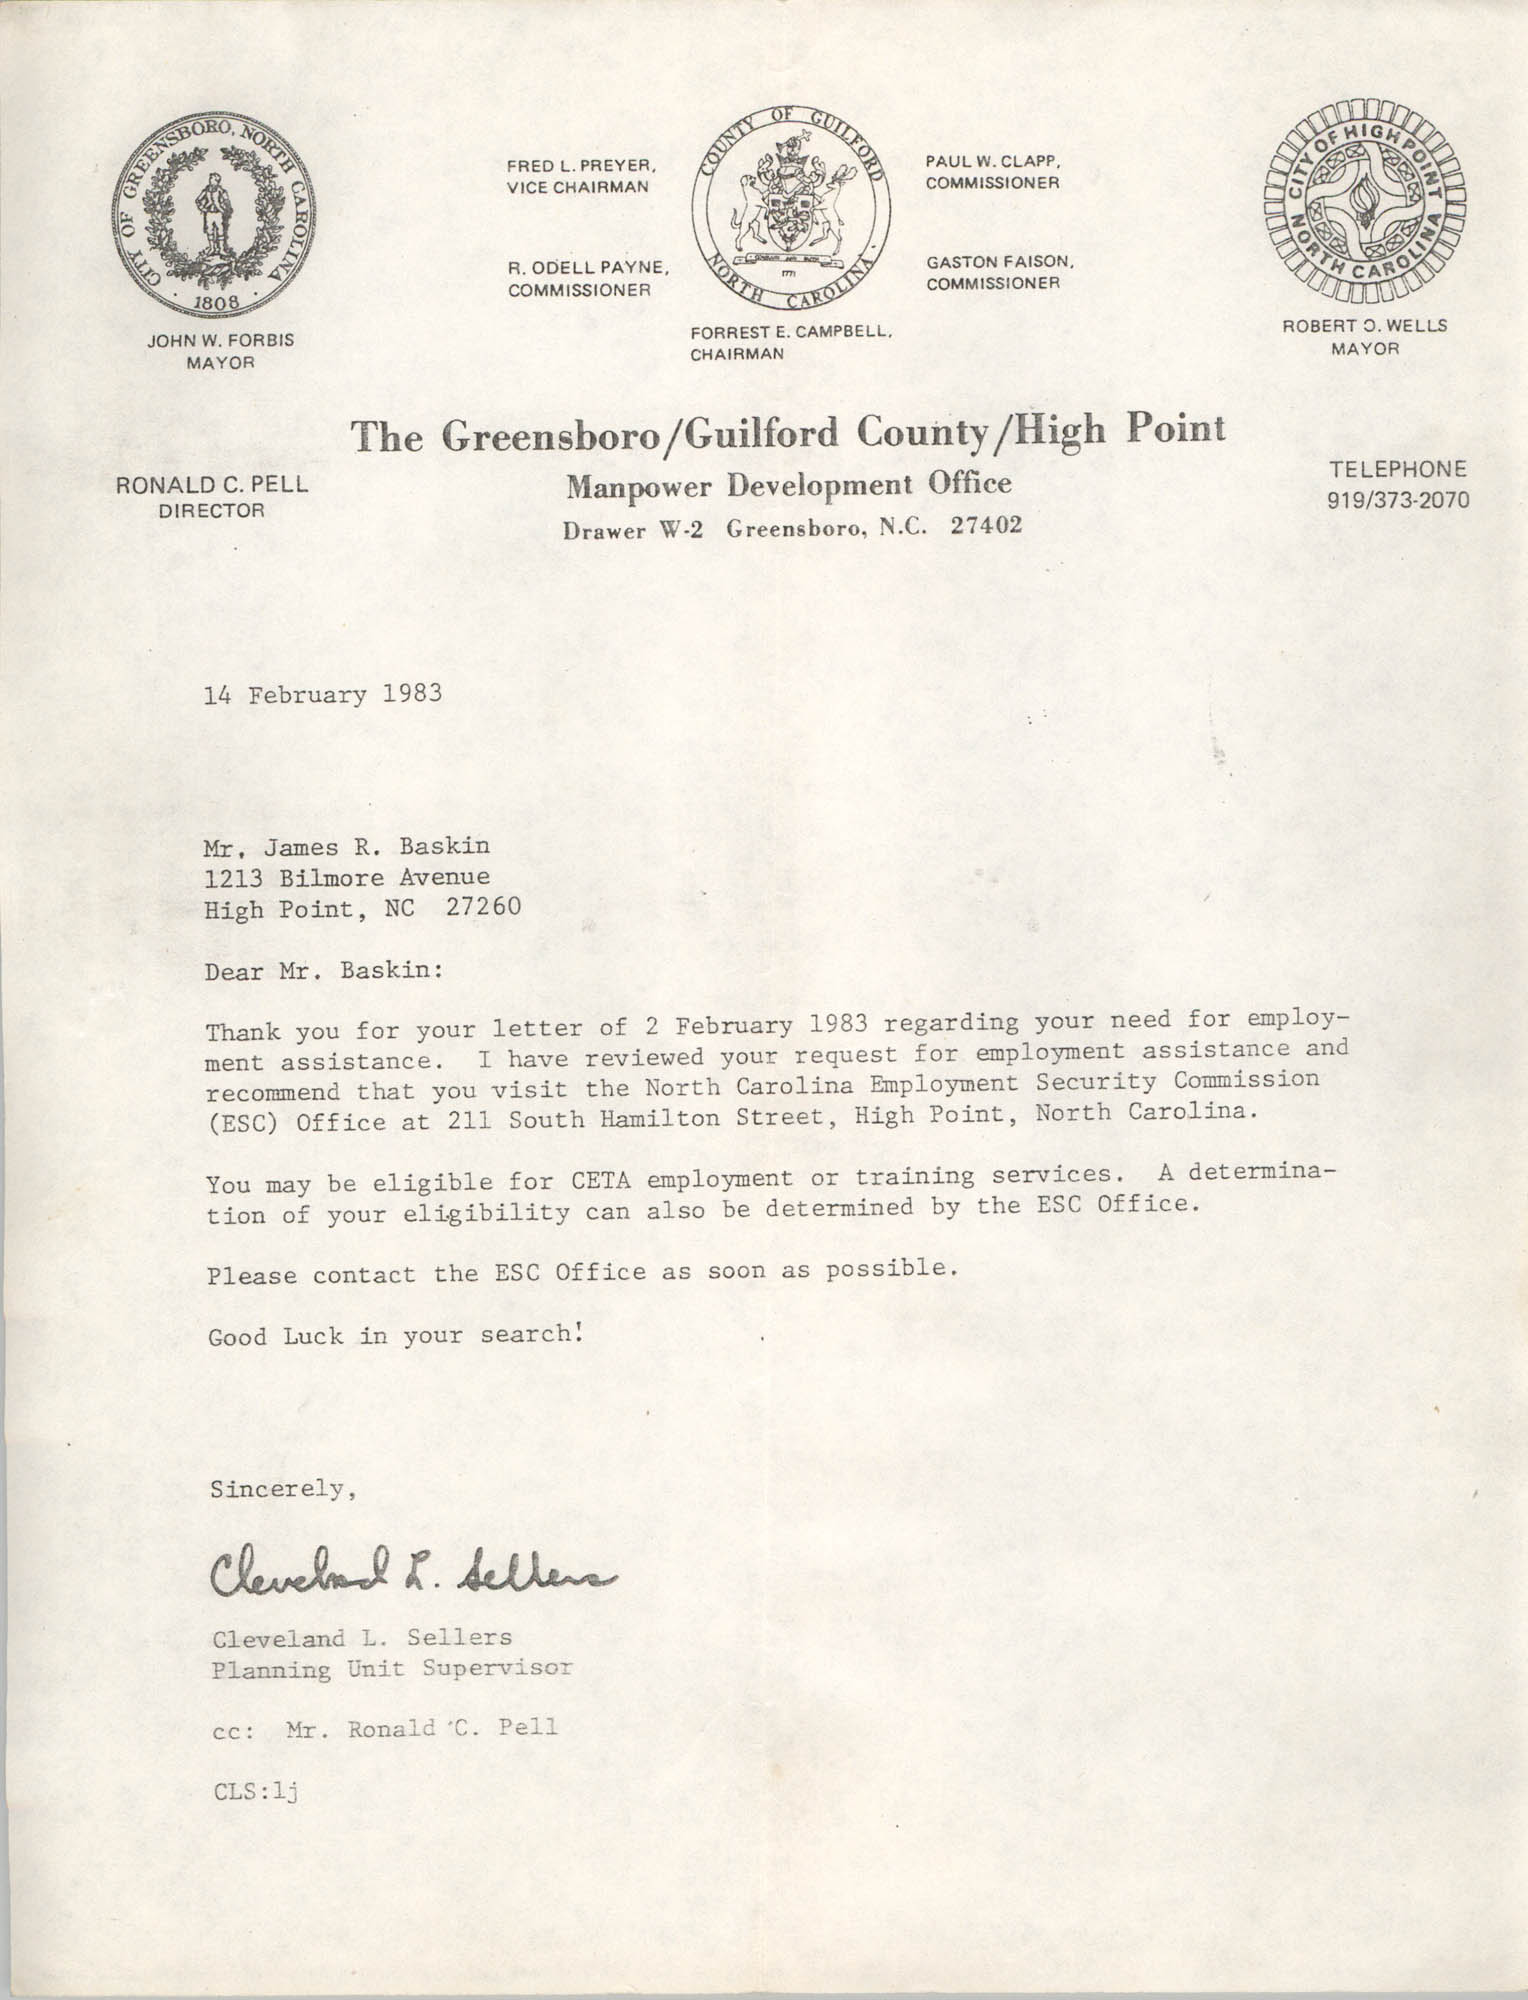 Letter from Cleveland Sellers to James R. Baskin, February 14, 1983